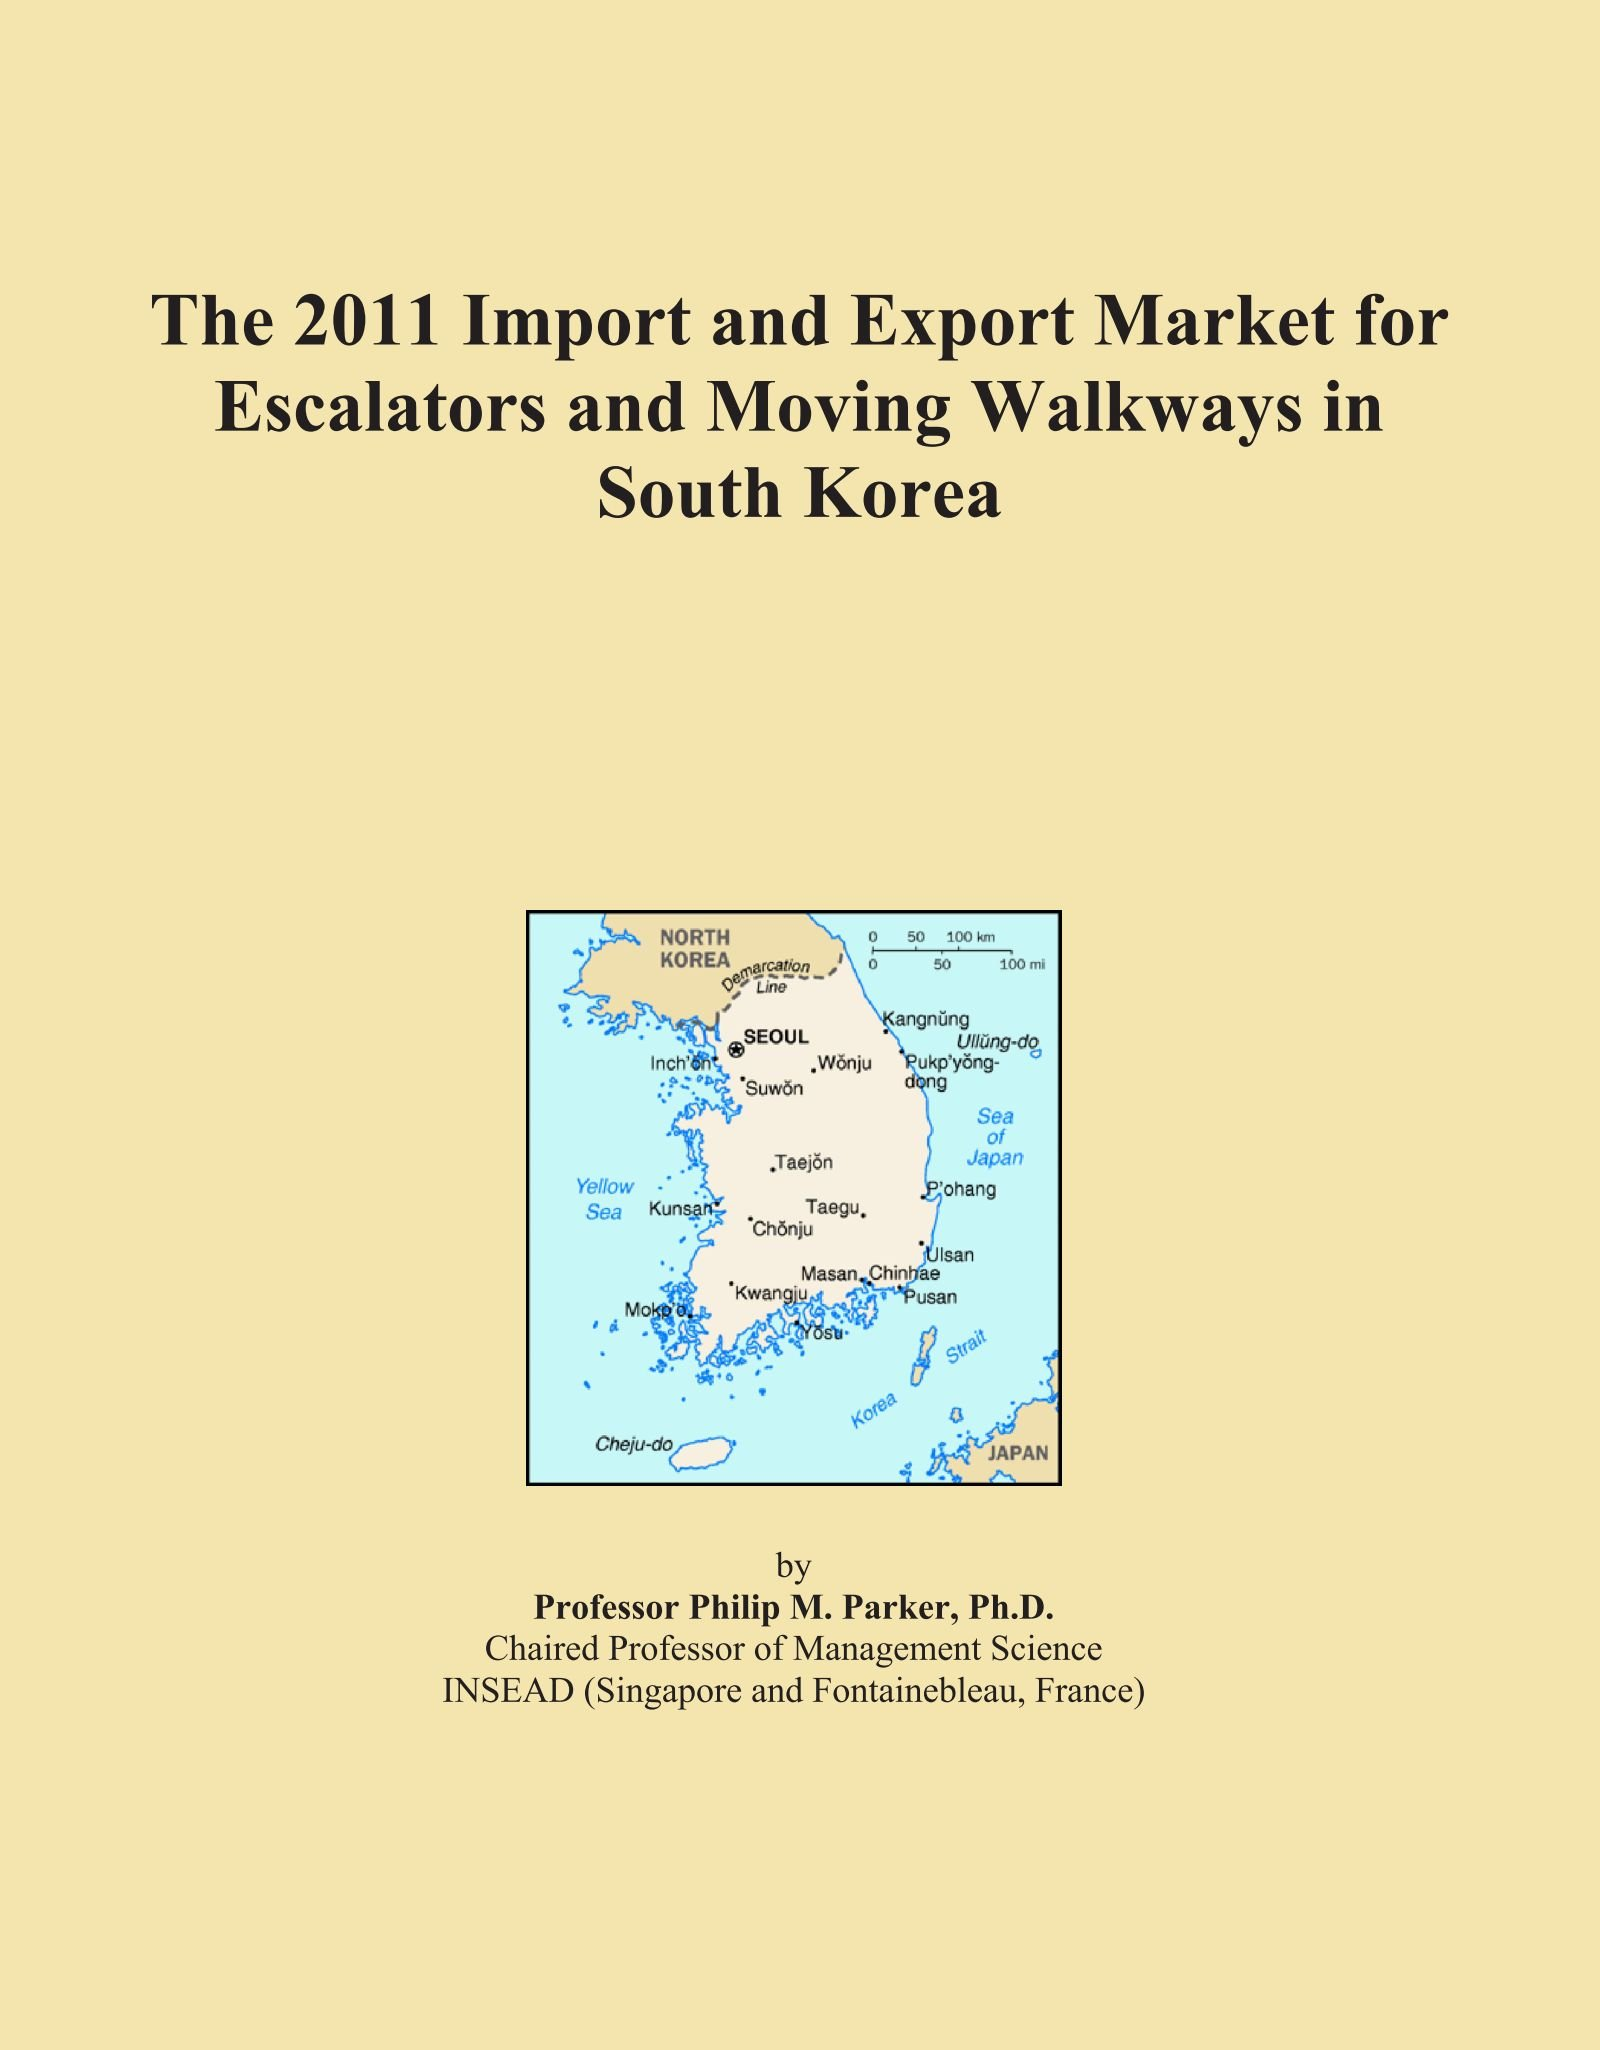 The 2011 Import and Export Market for Escalators and Moving Walkways in South Korea pdf